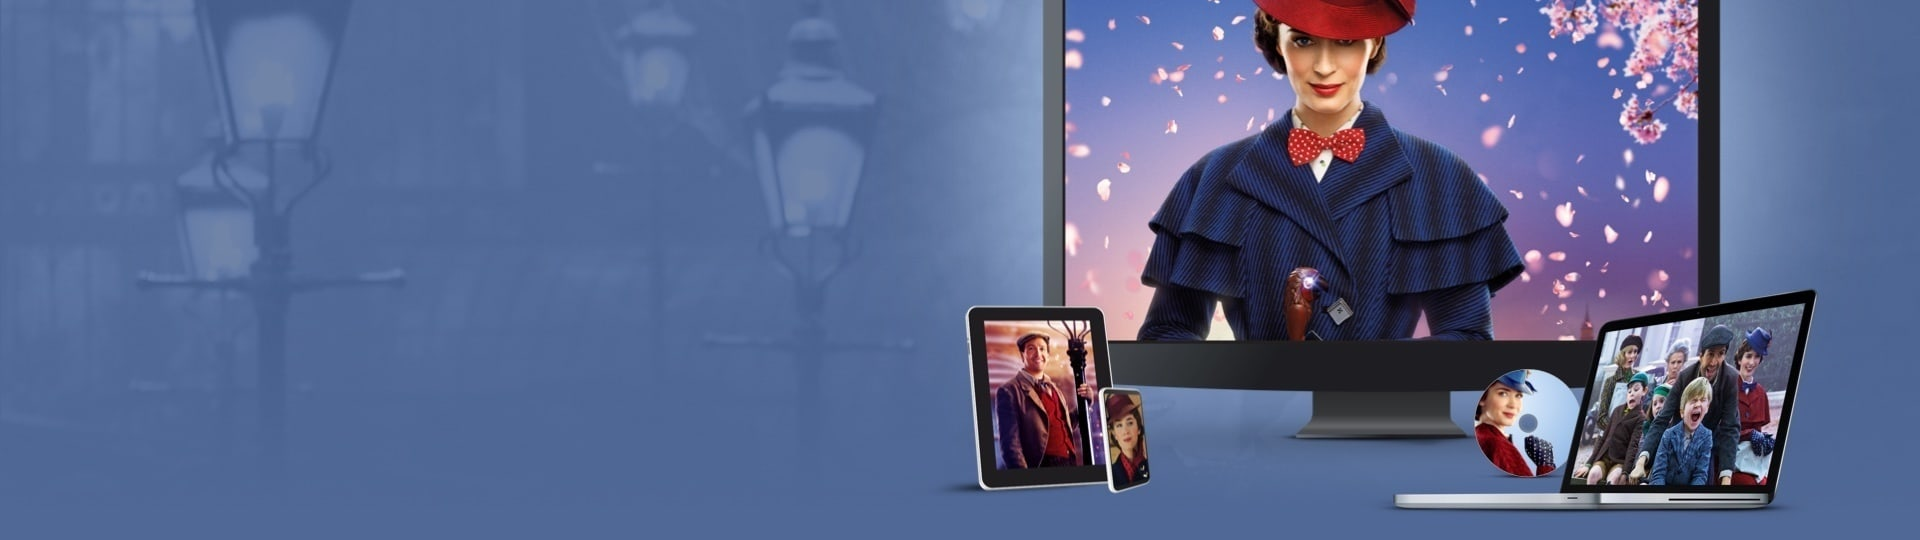 Mary Poppins revine | Disponibil acum pe DVD